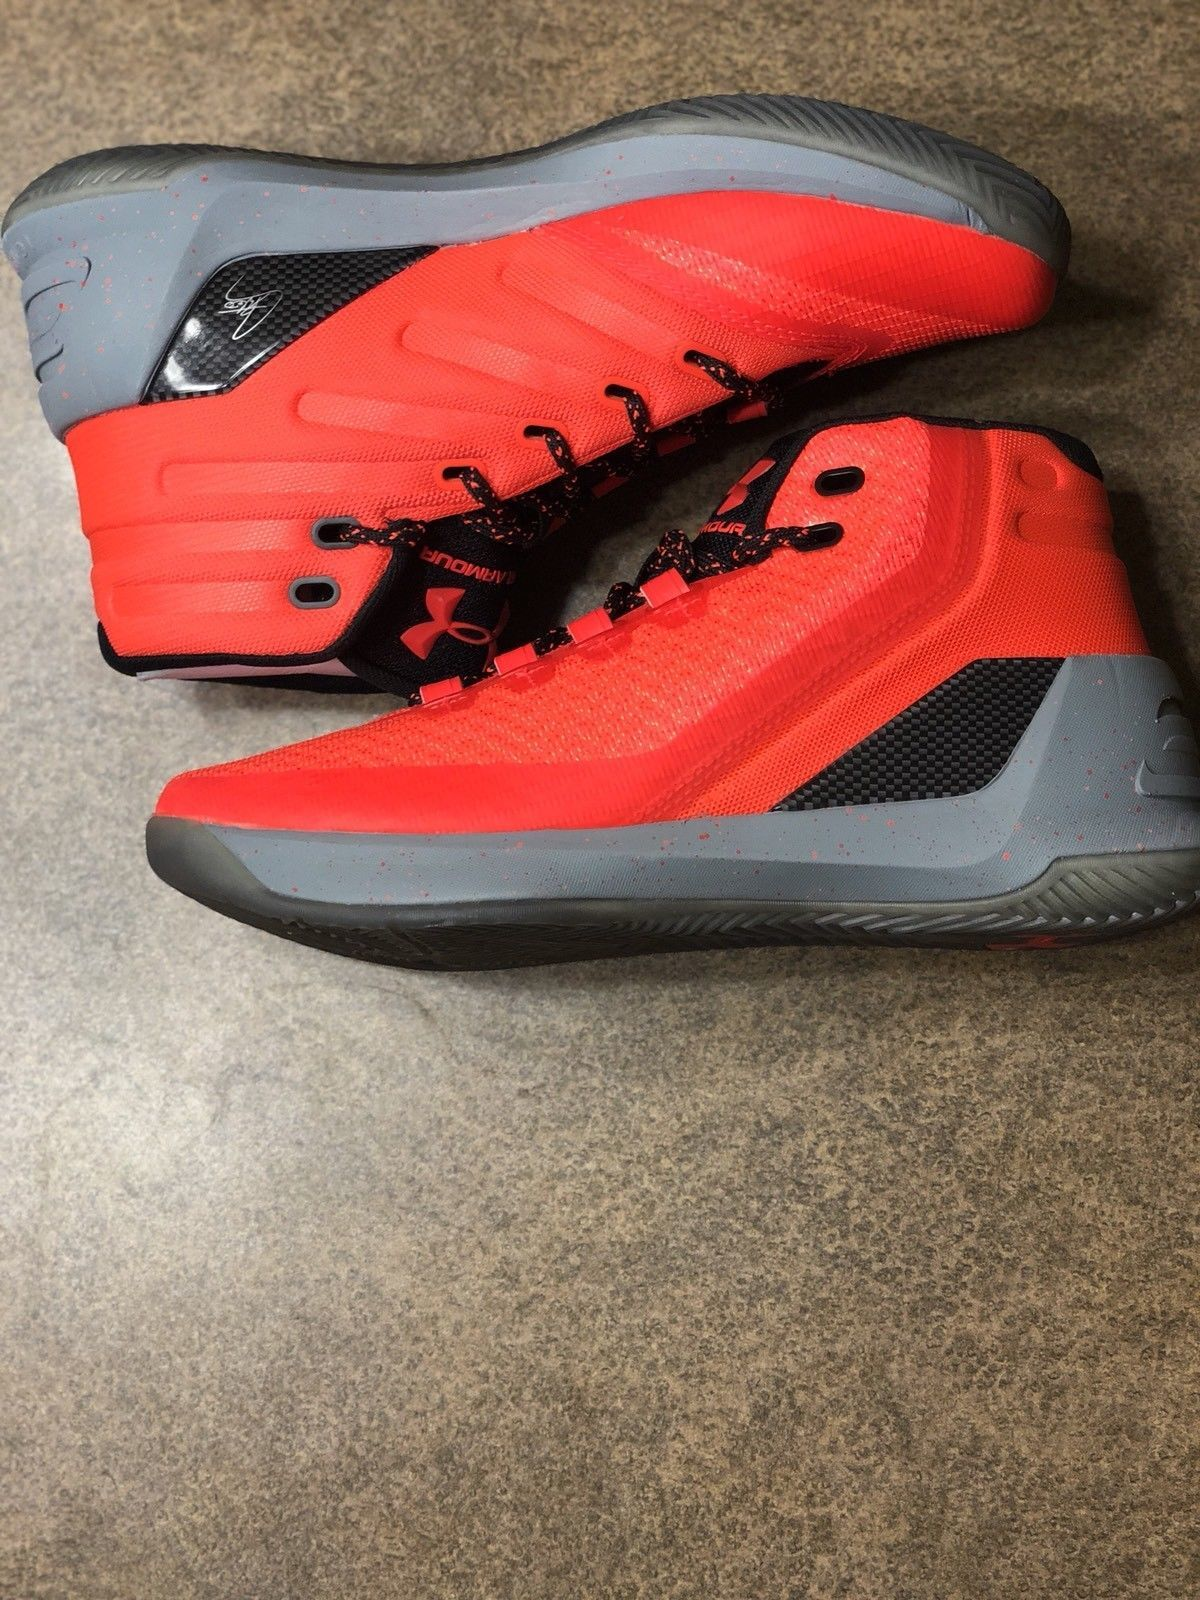 S l1600. S l1600. Previous. Under Armour Boys  Grade School UA Curry 3  Basketball Shoes Sneakers 6Y 6 Young 7245e6f4716